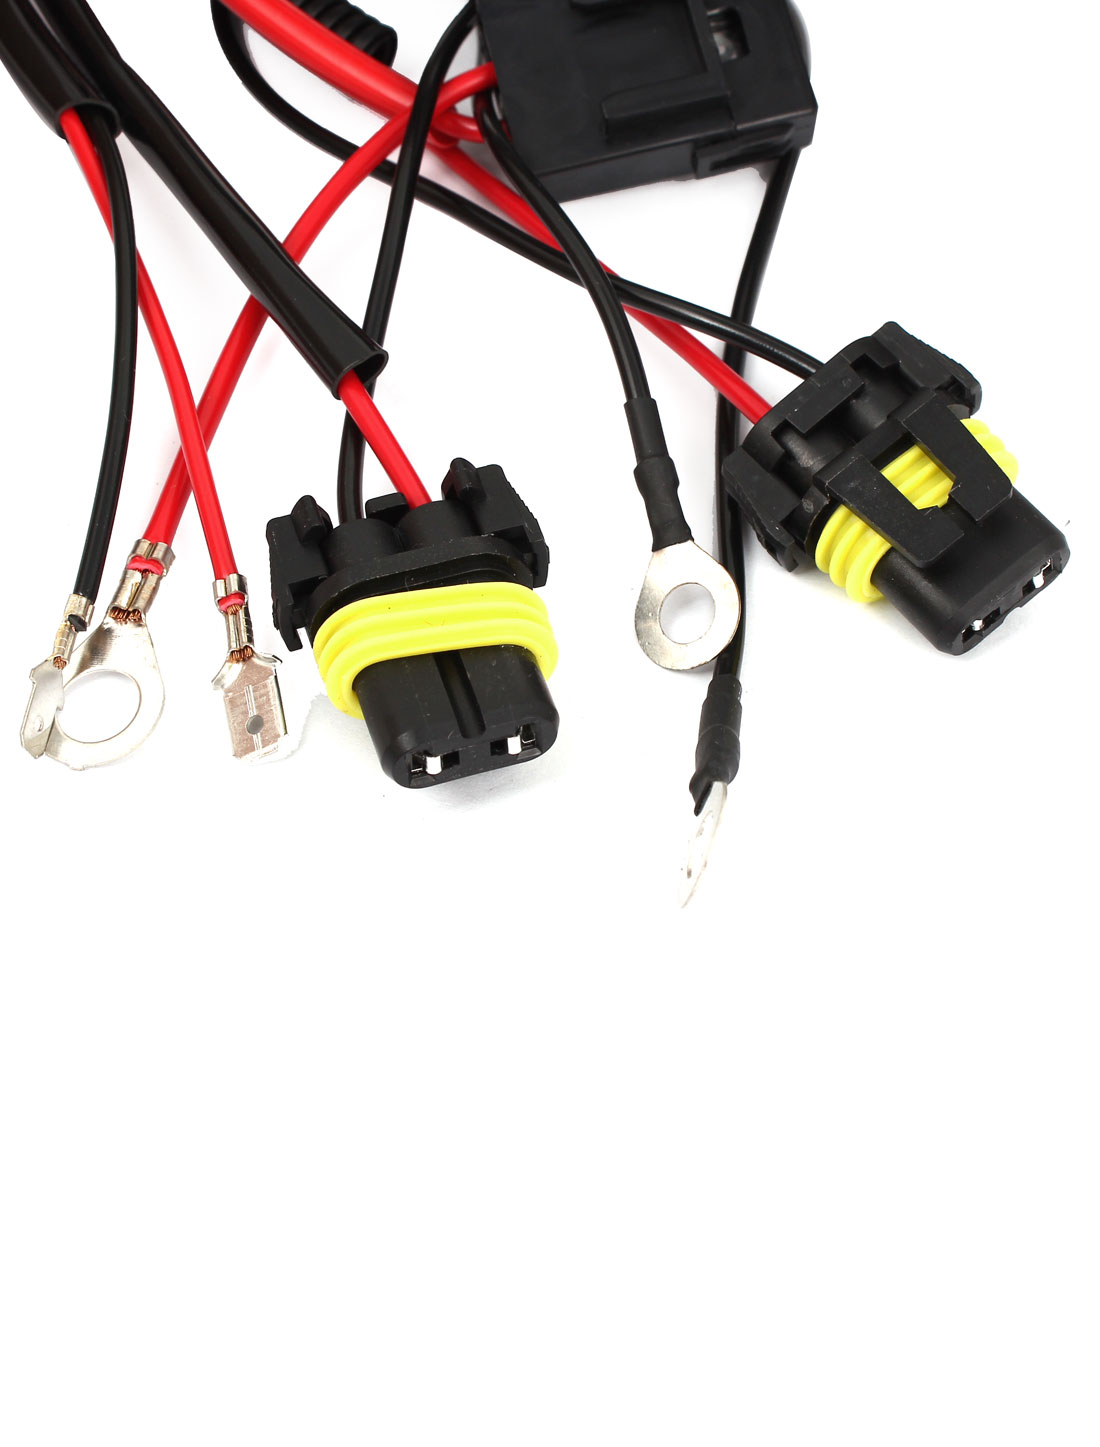 hight resolution of hid xenon conversion kit resistor relay wire harness anti flicker h1 40a 12v walmart canada